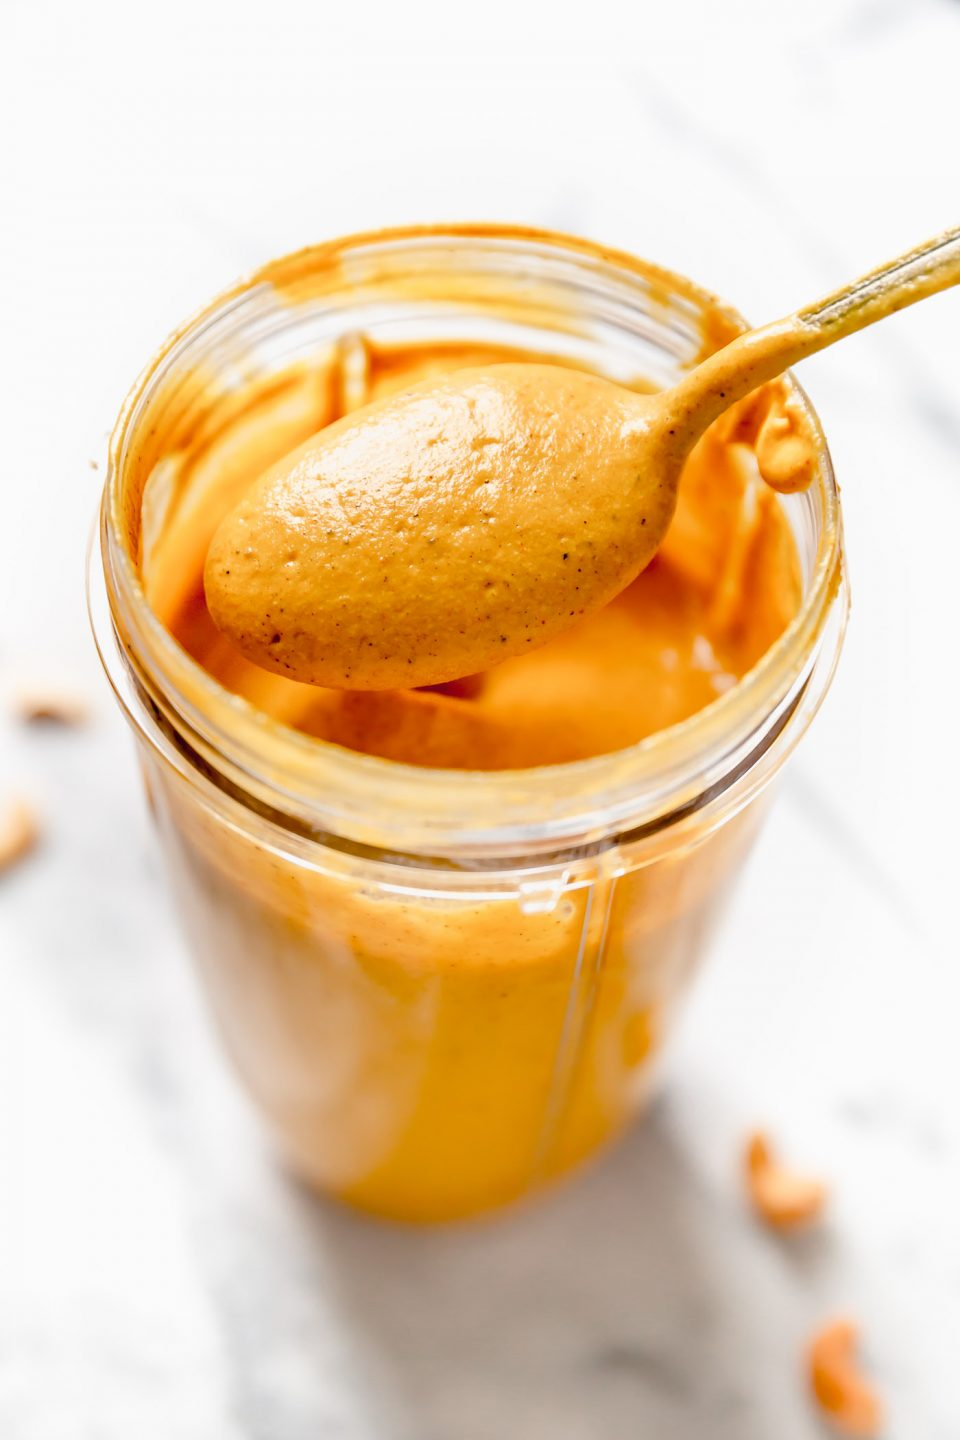 Vegan pumpkin cream sauce shown in a blender after blending. A spoon is lifting some of the sauce out of the blender.